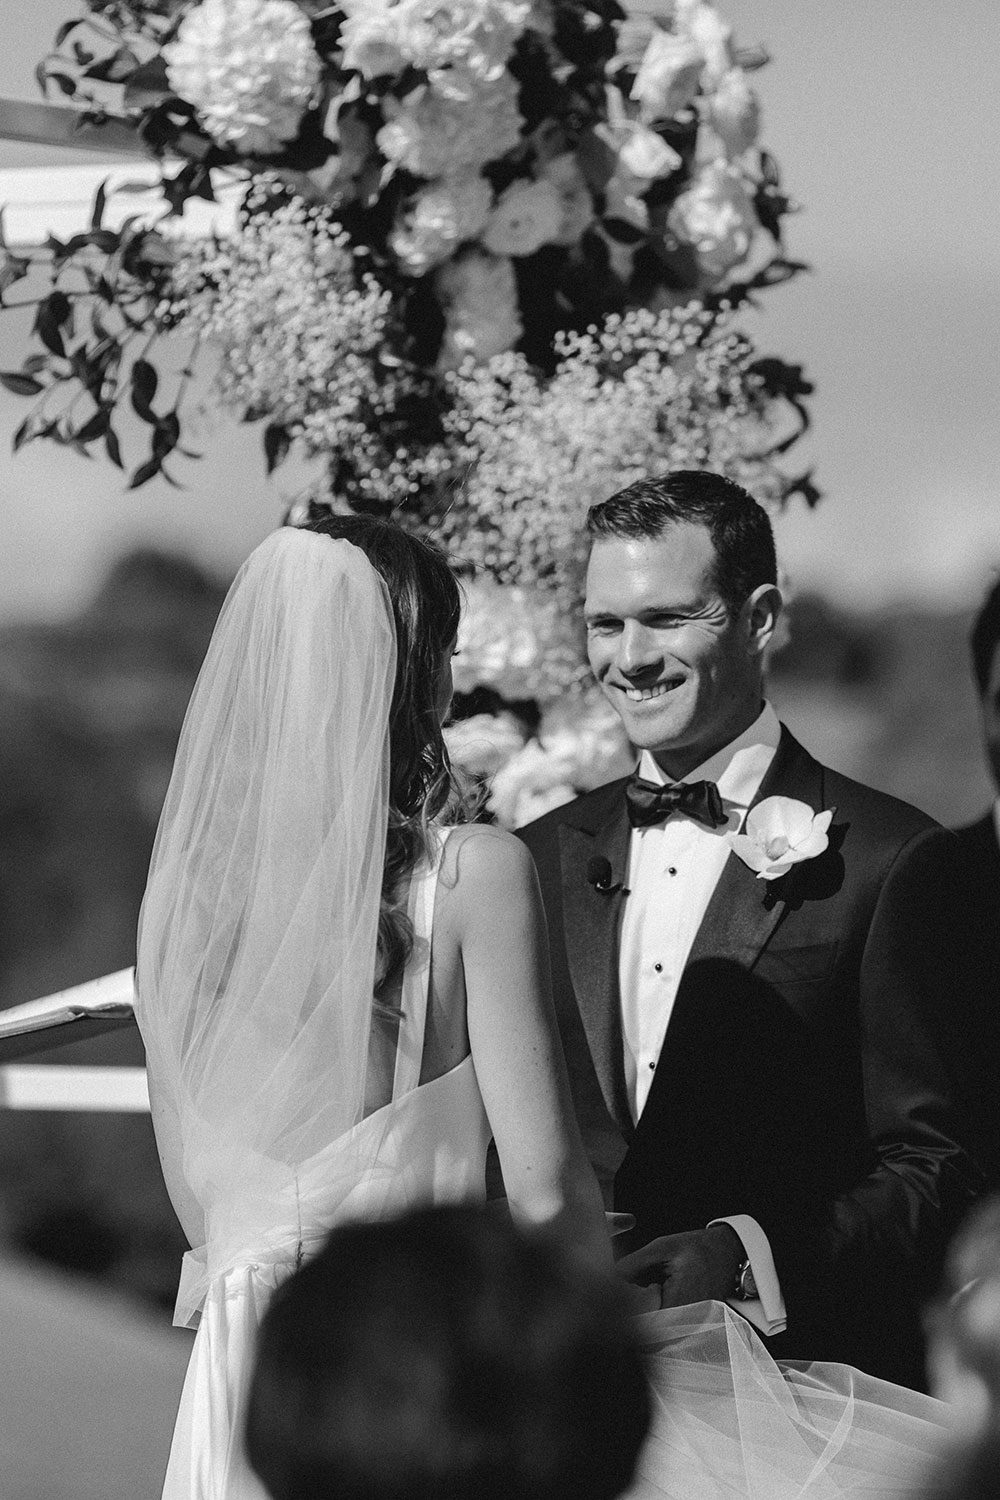 Bride wearing NZ Bespoke Bridal Gown made of silk faile with cowl bodice and detachable overskirt by Vinka Designs - black and white saying vows